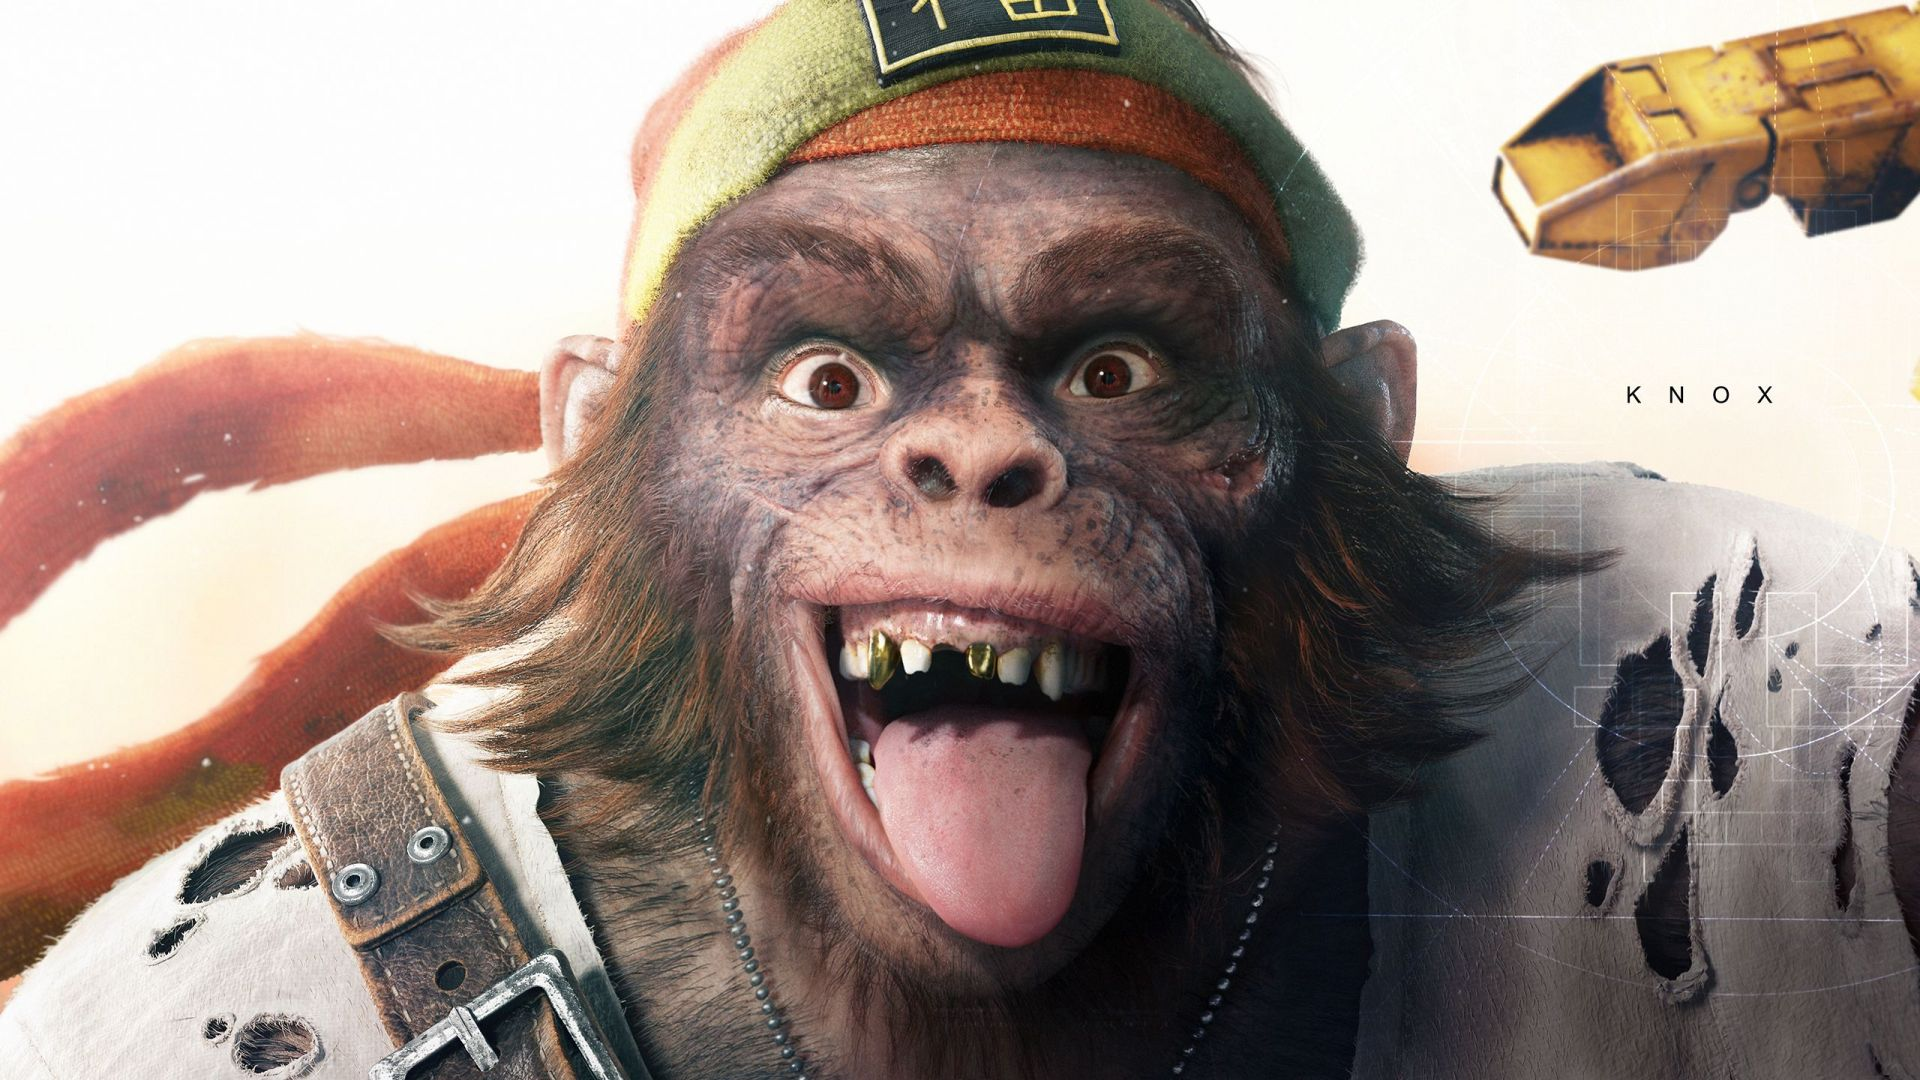 Wallpaper Beyond Good and Evil 2, video game, monkey face